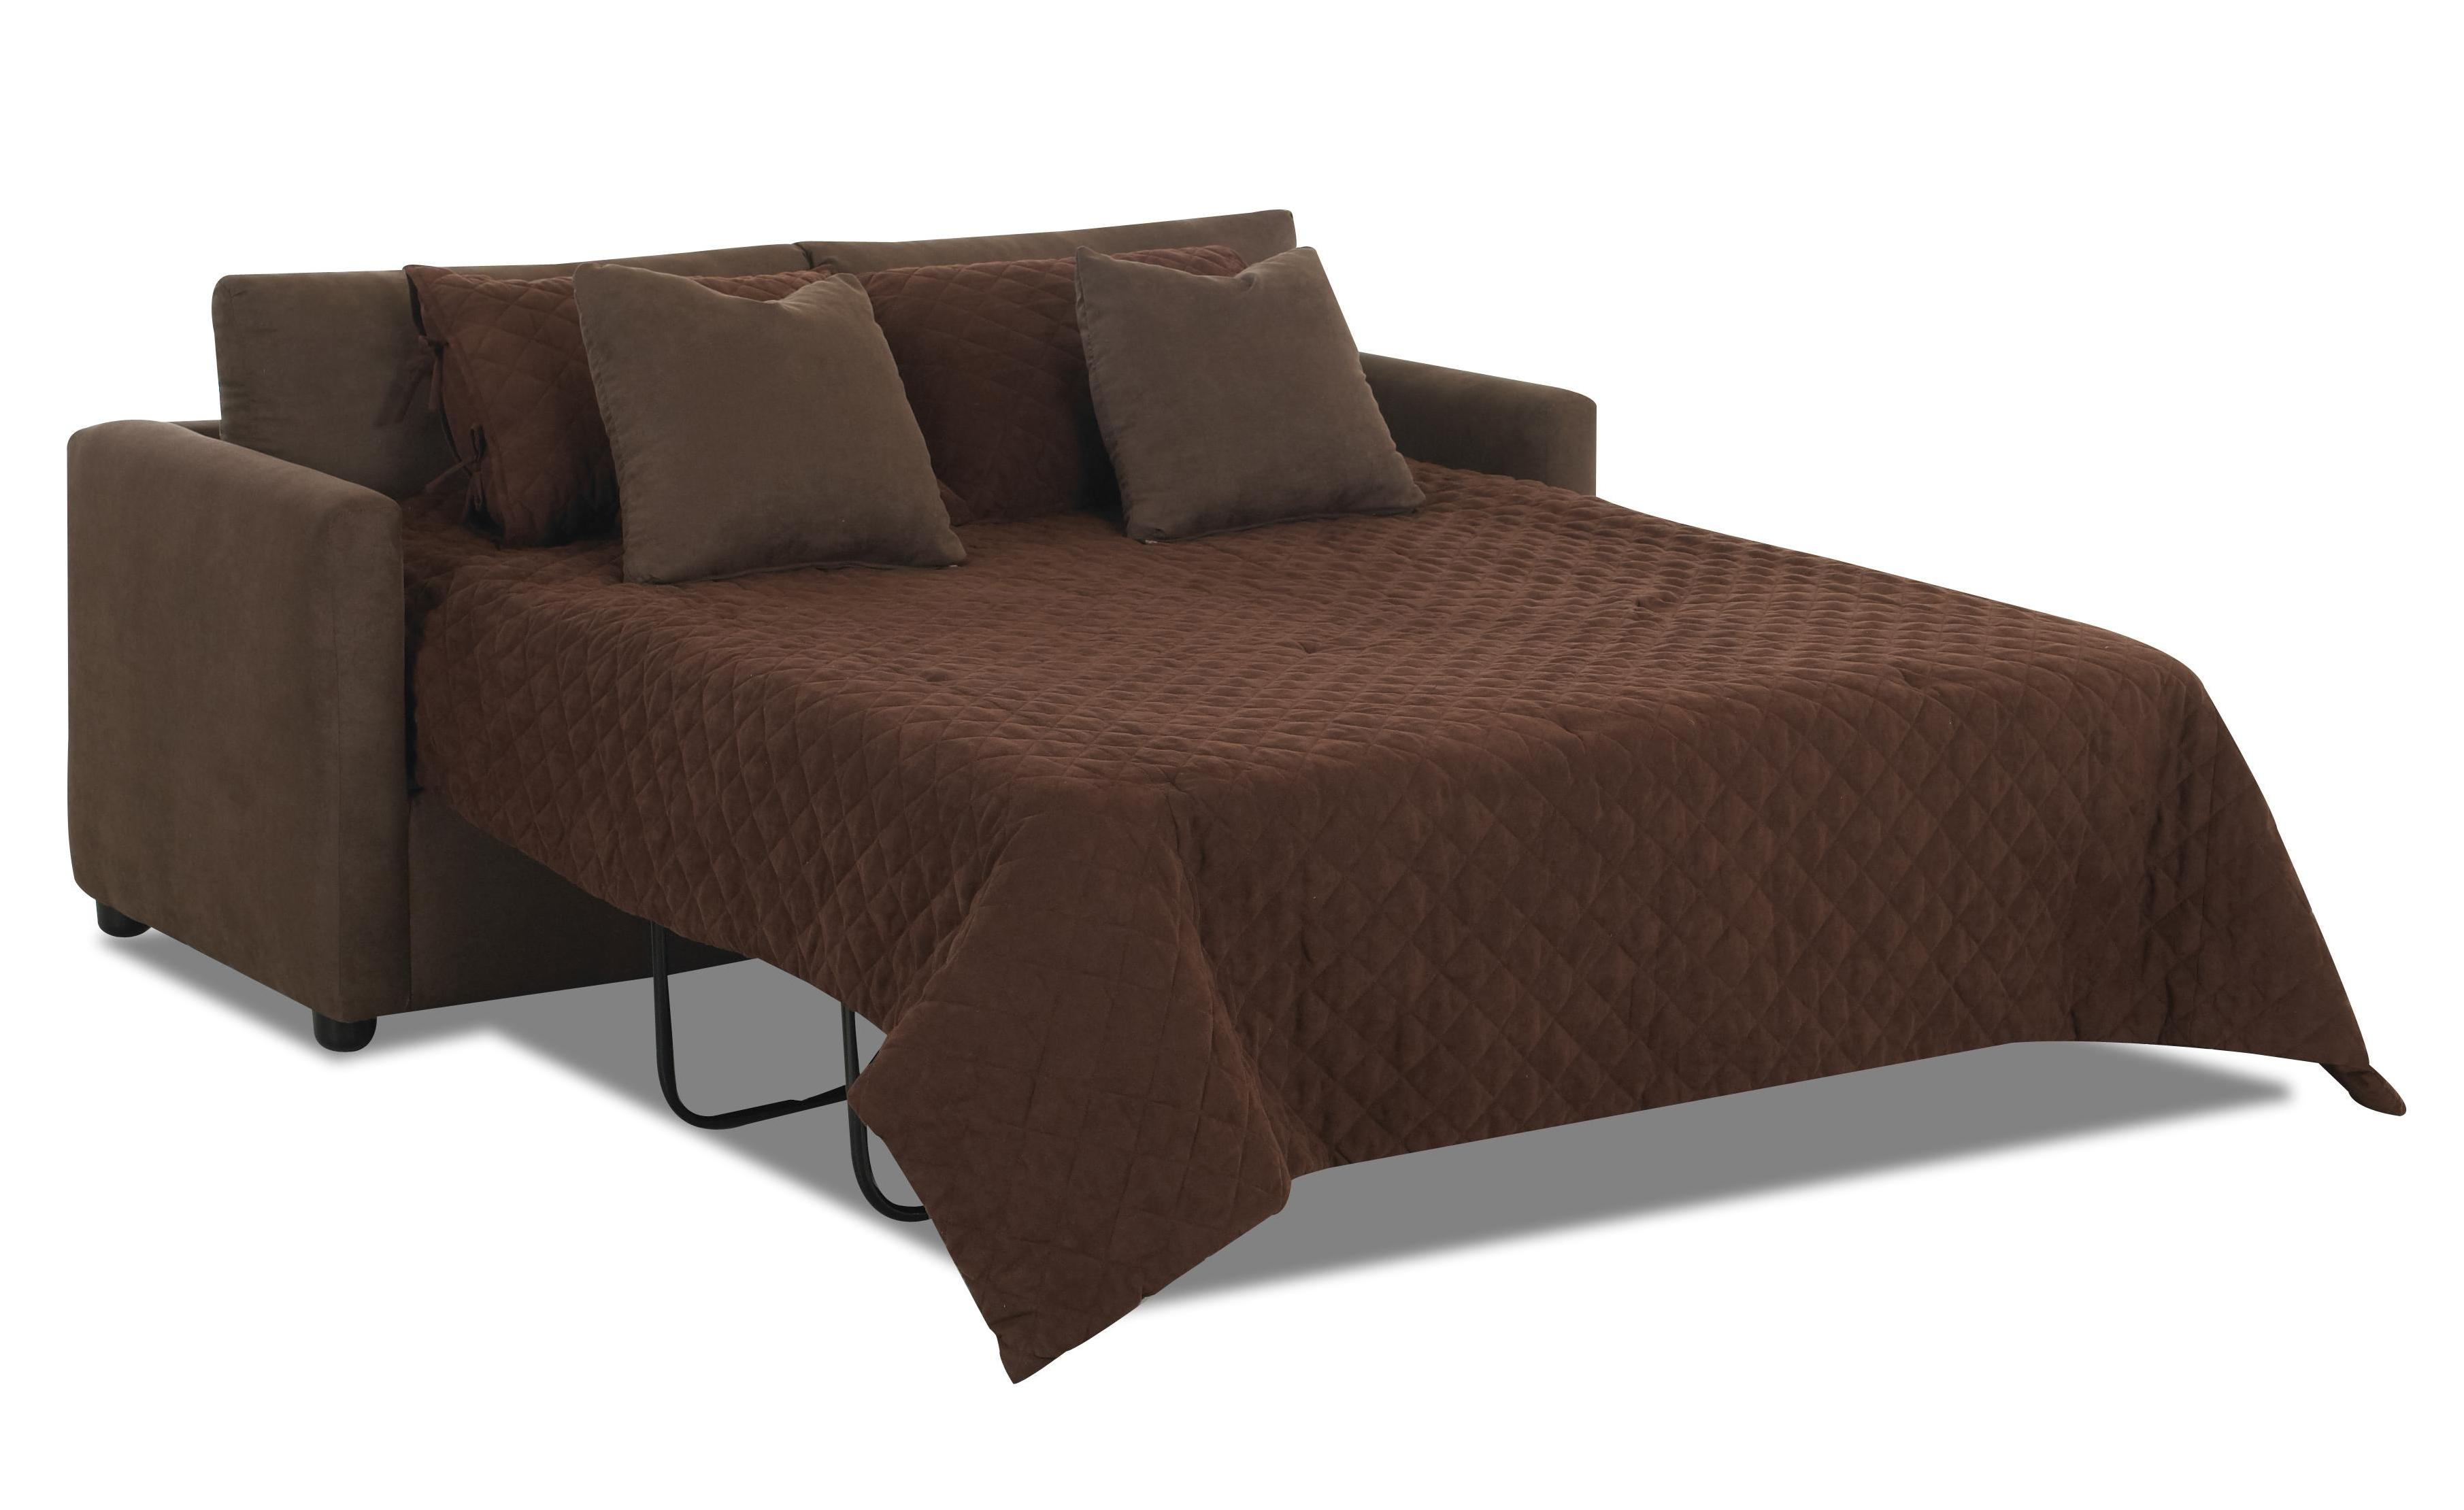 What Is The Difference Between A Sleeper Sofa And Pull Out